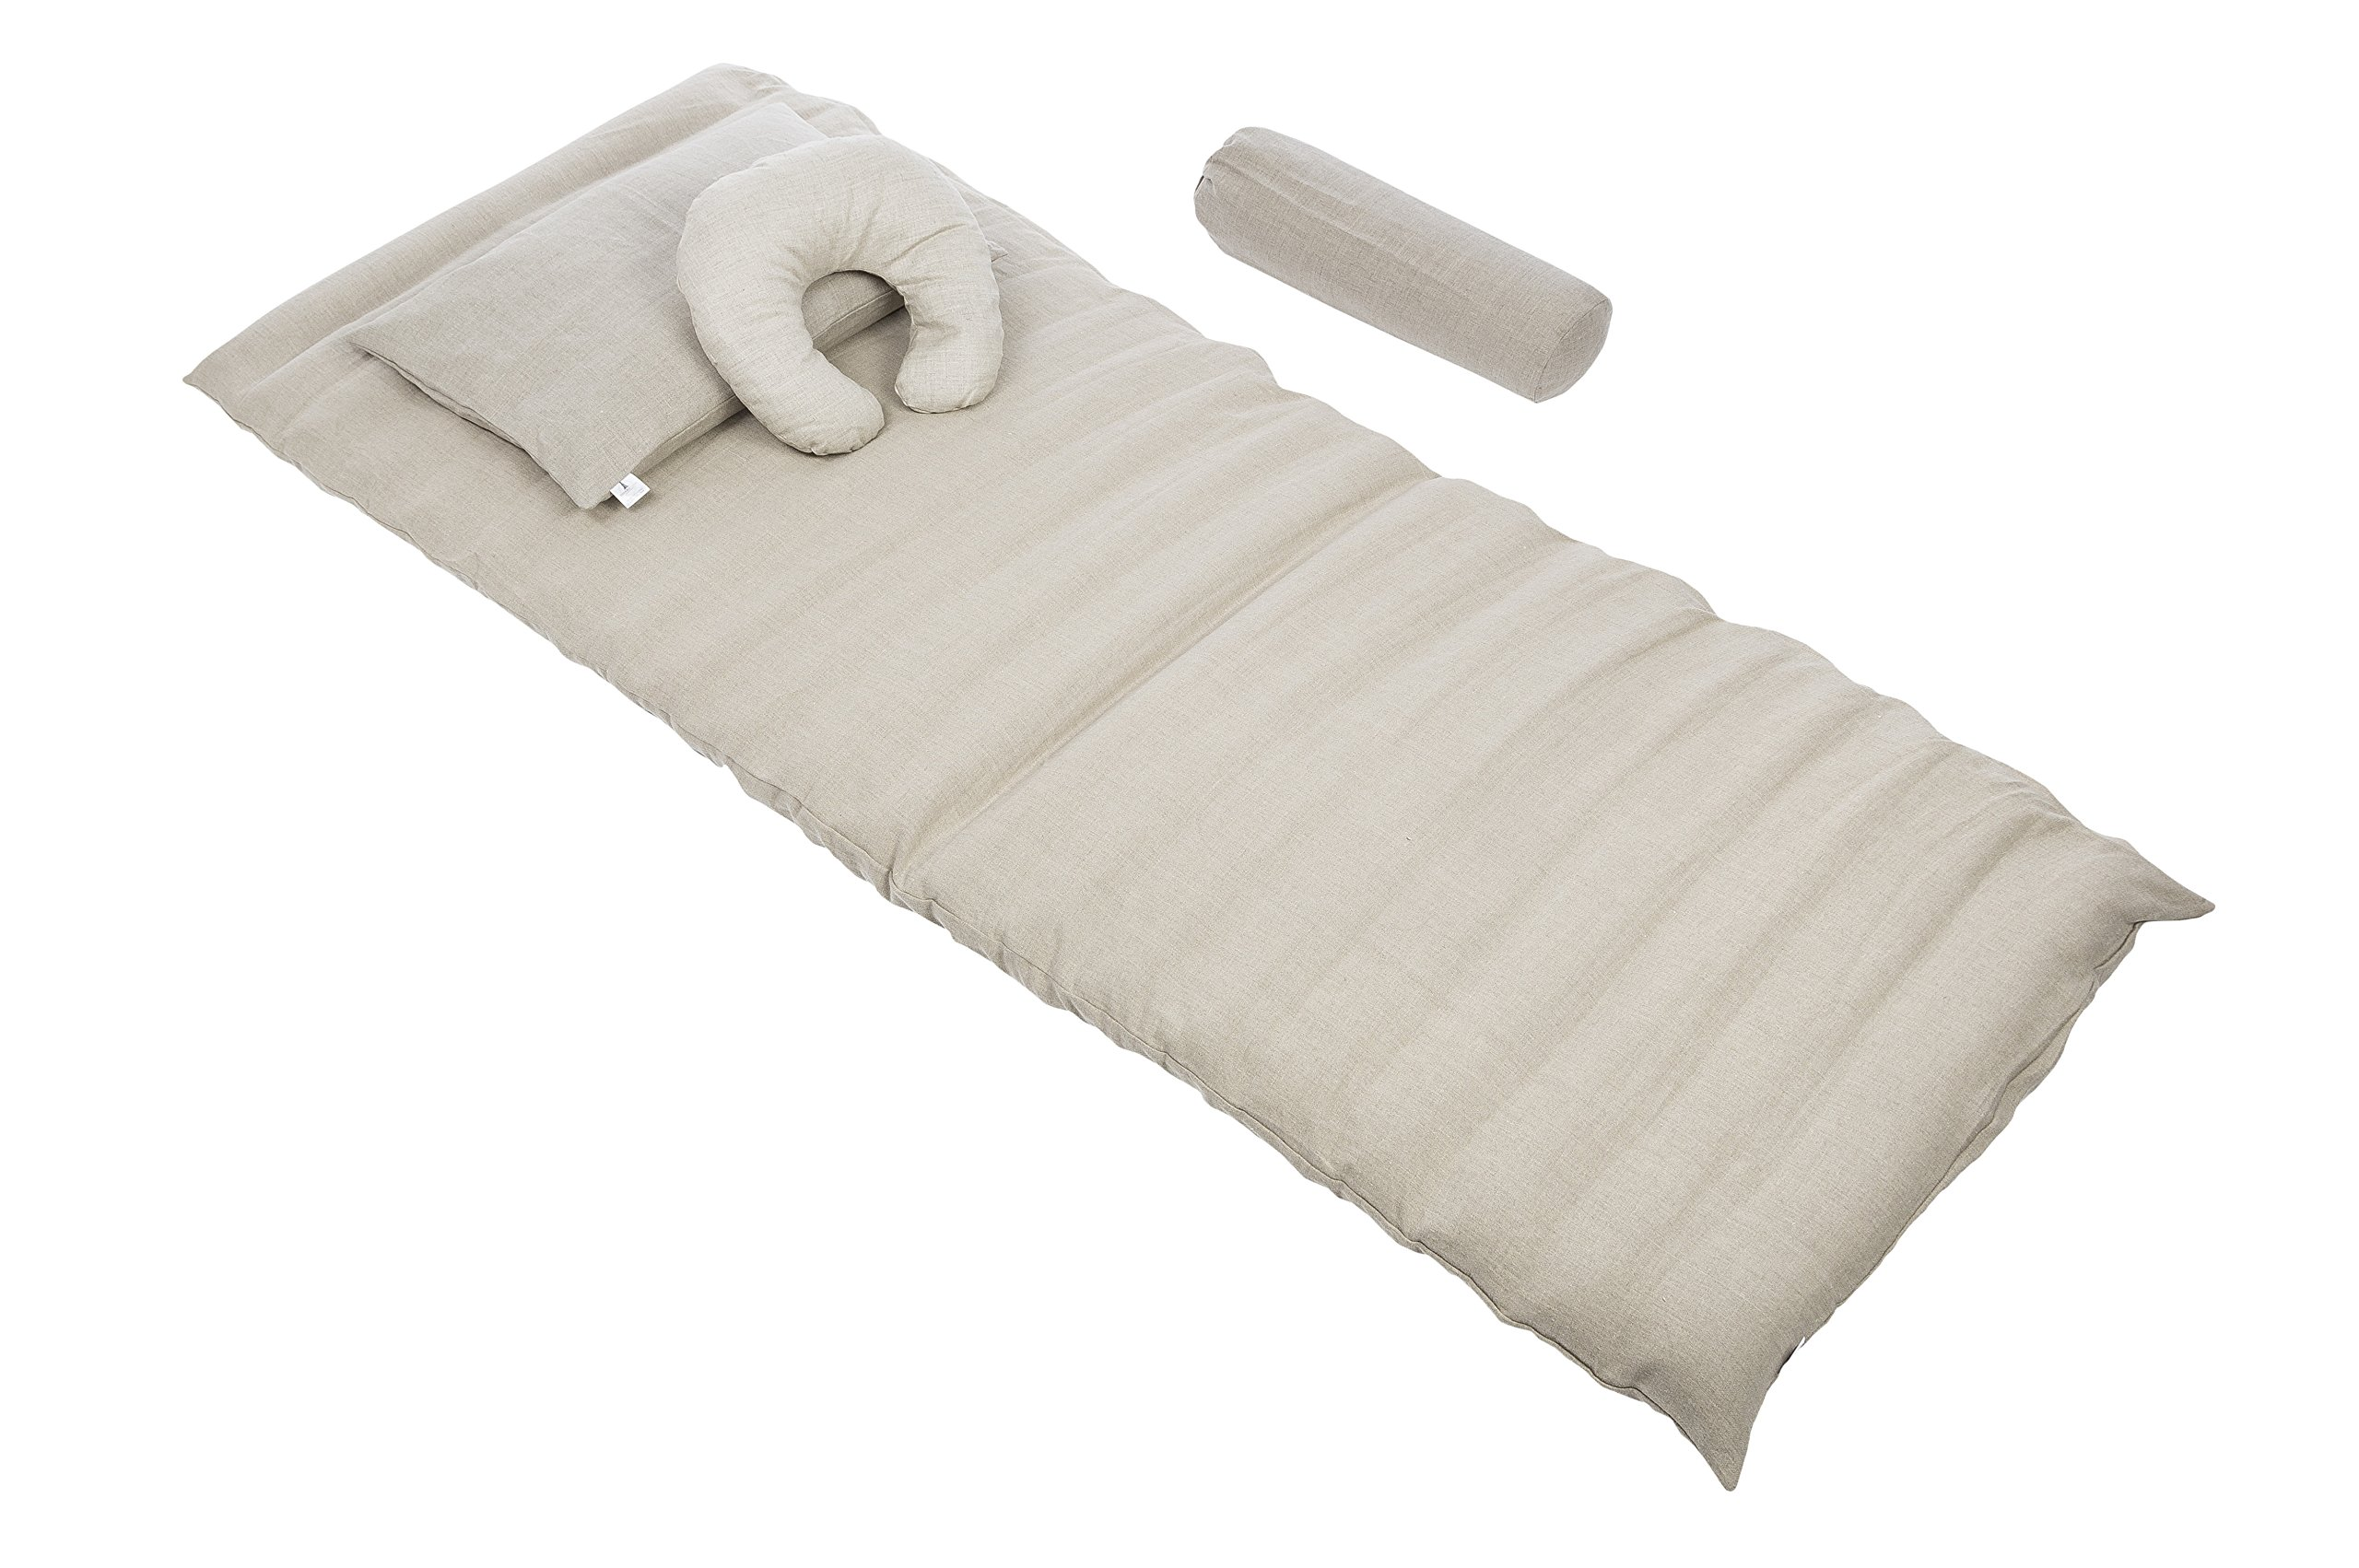 Set: Mat 31.5''x79'' + Pillows/cushions with Buckwheat Filling and Flax Linen Covers